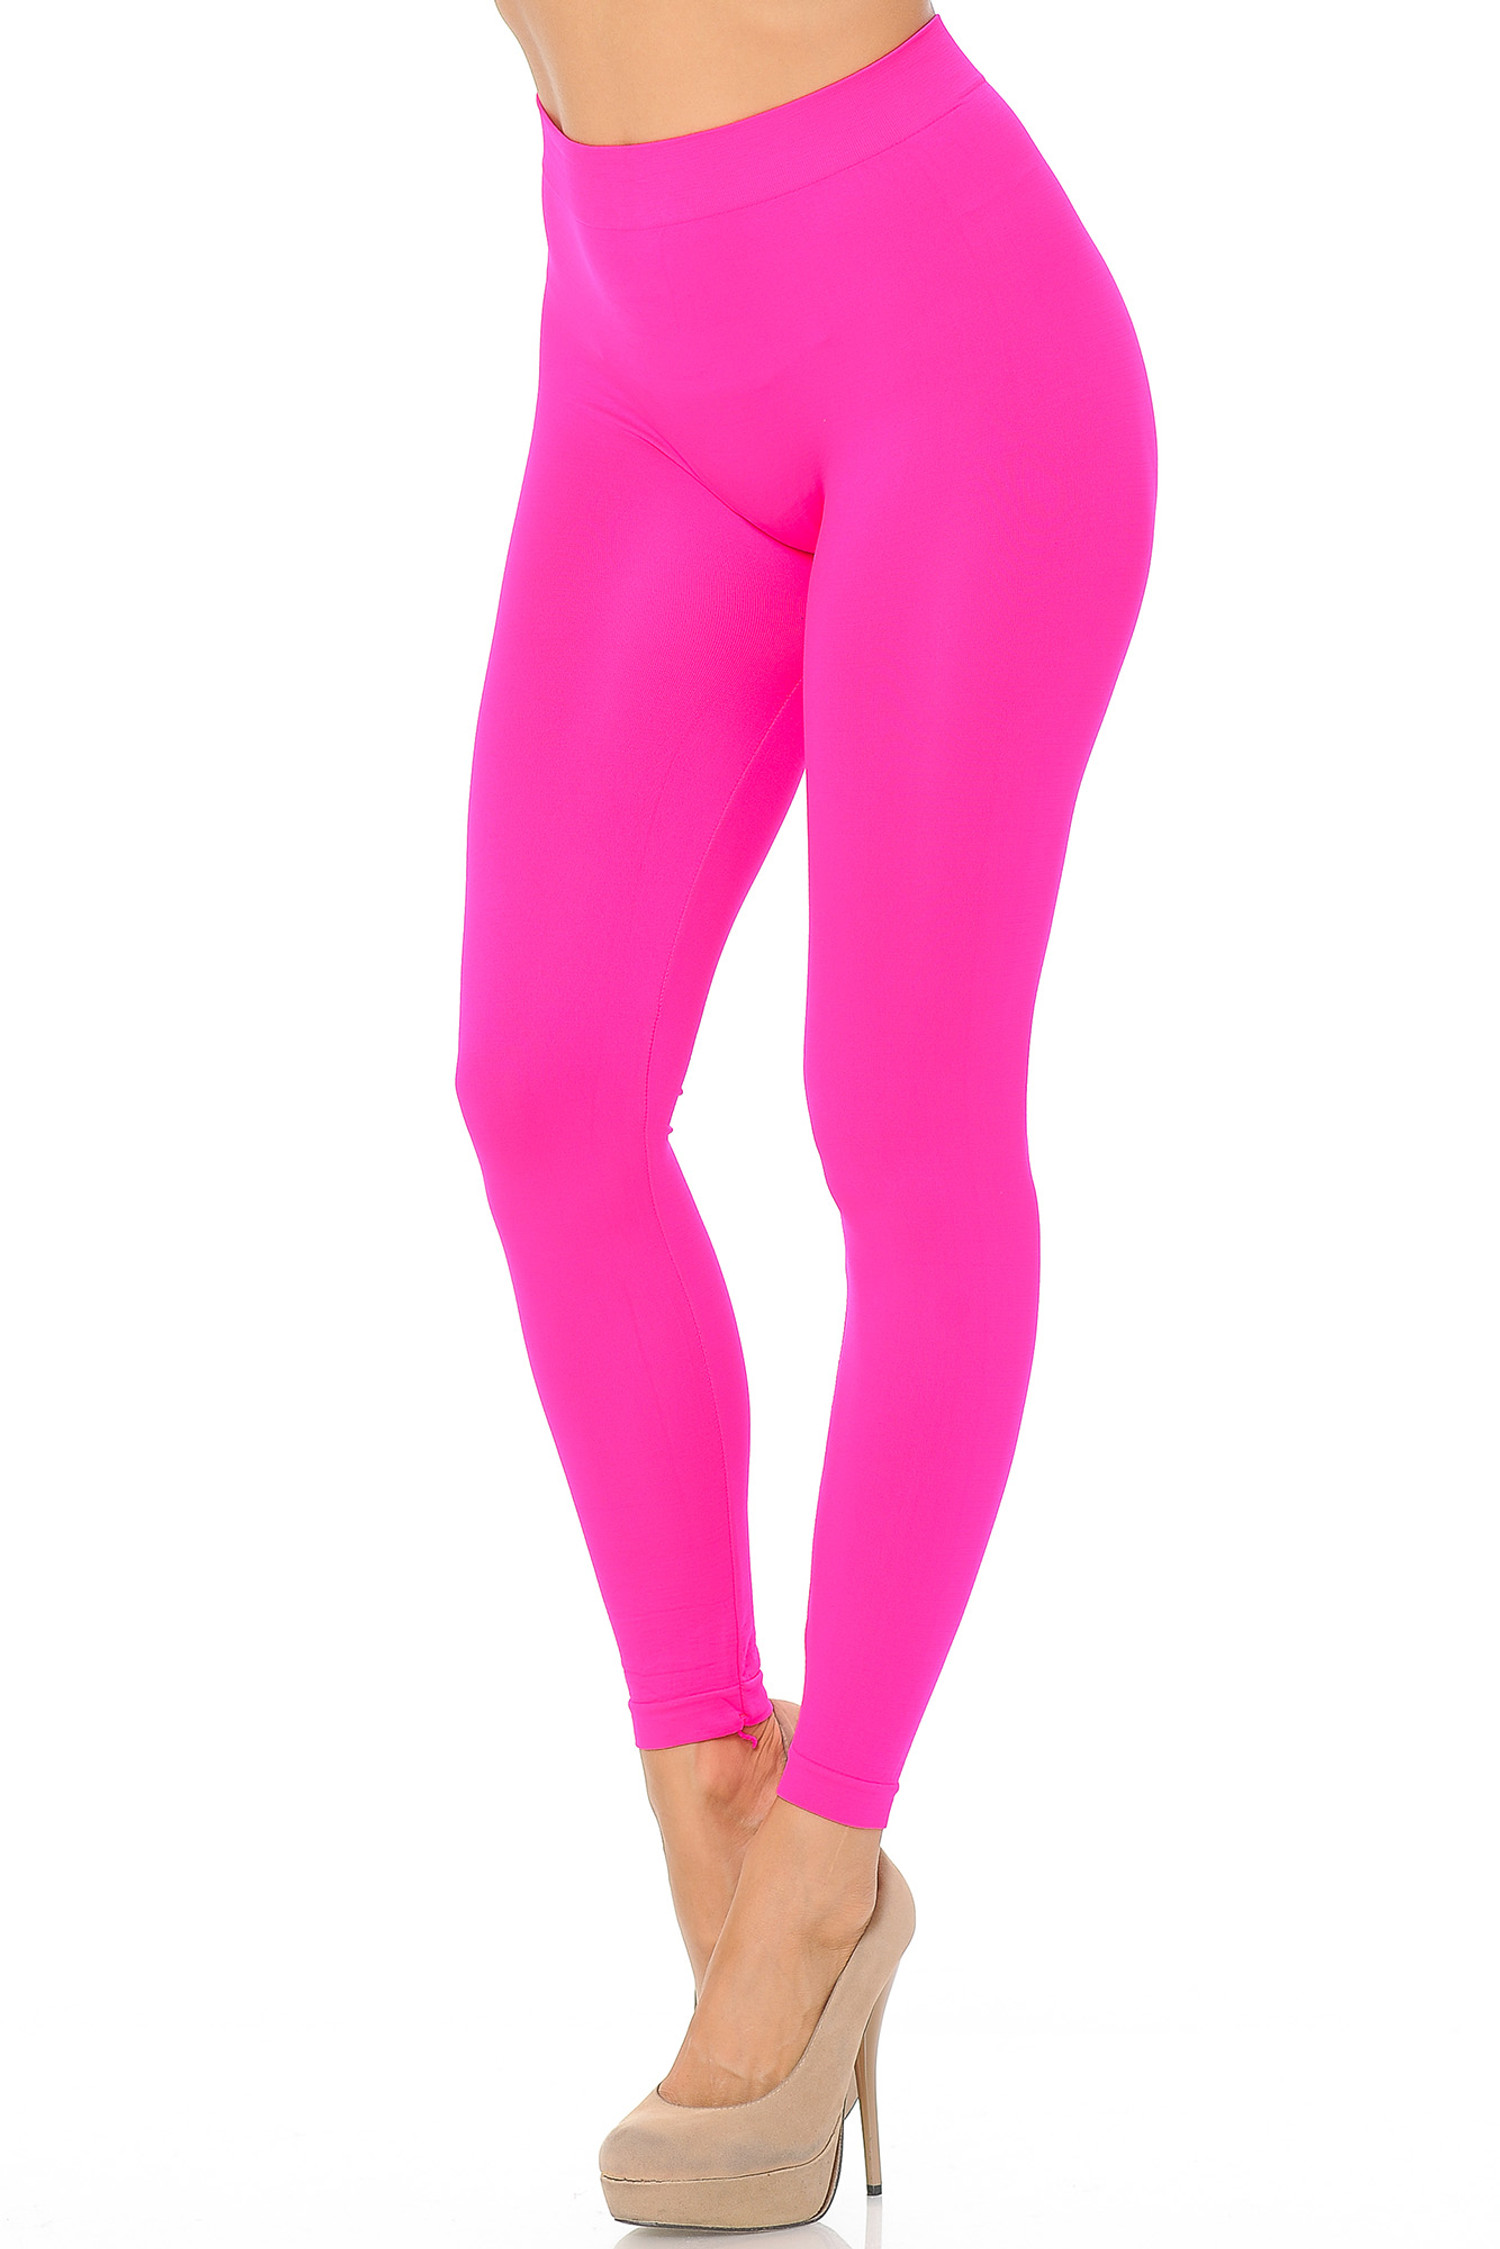 Premium Nylon Spandex Solid Basic Leggings